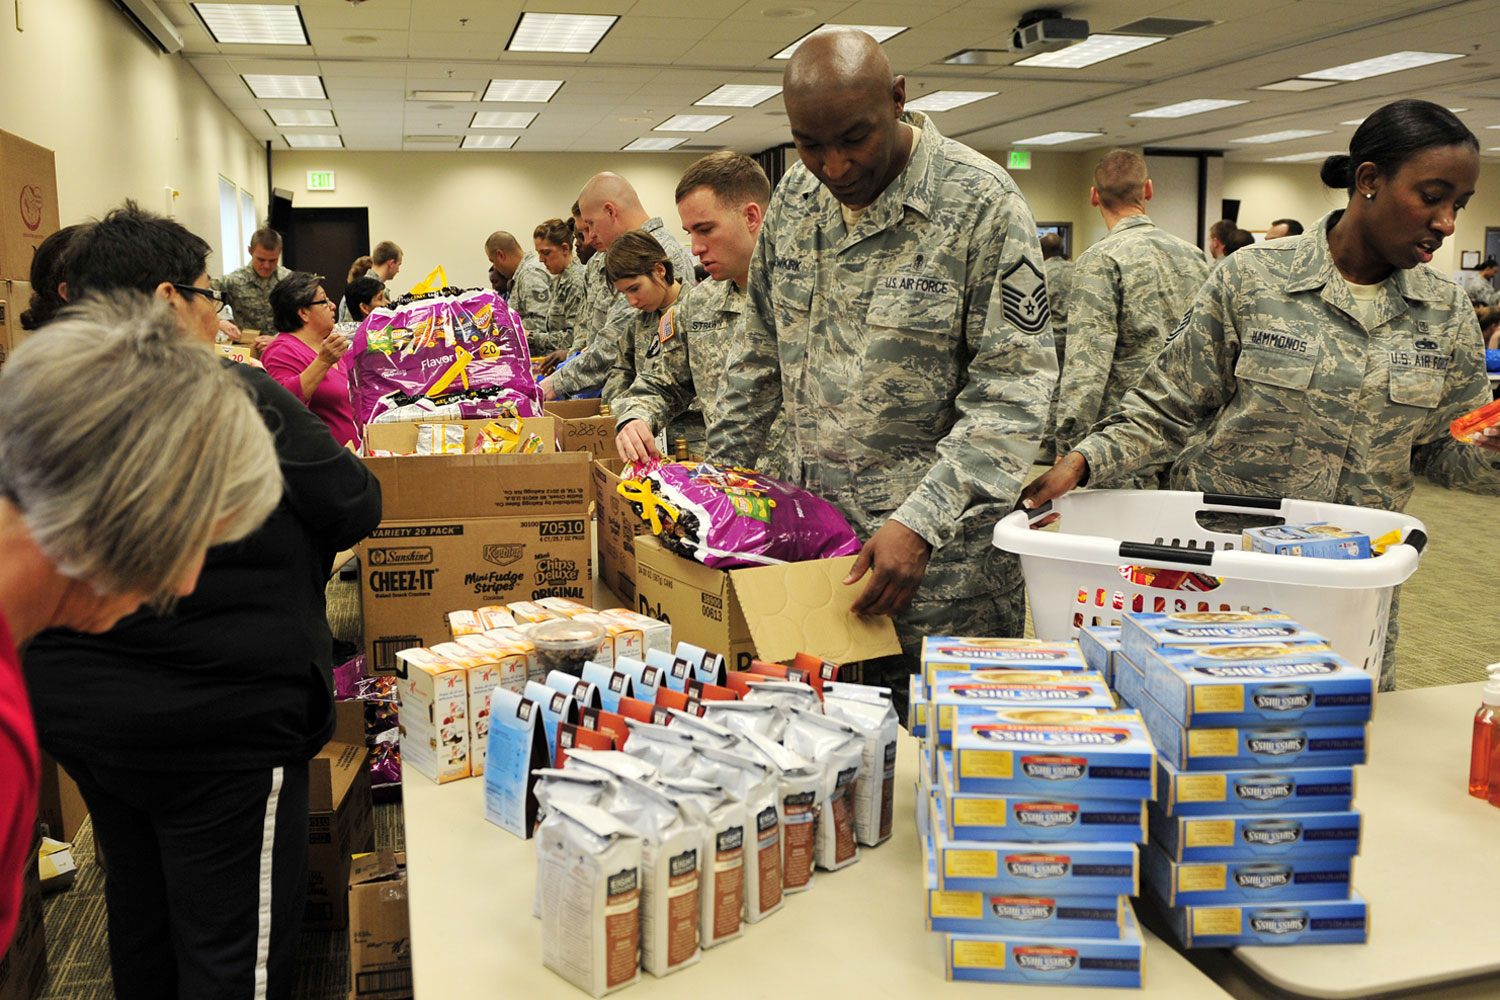 Should More Troops Become Eligible For Food Stamps